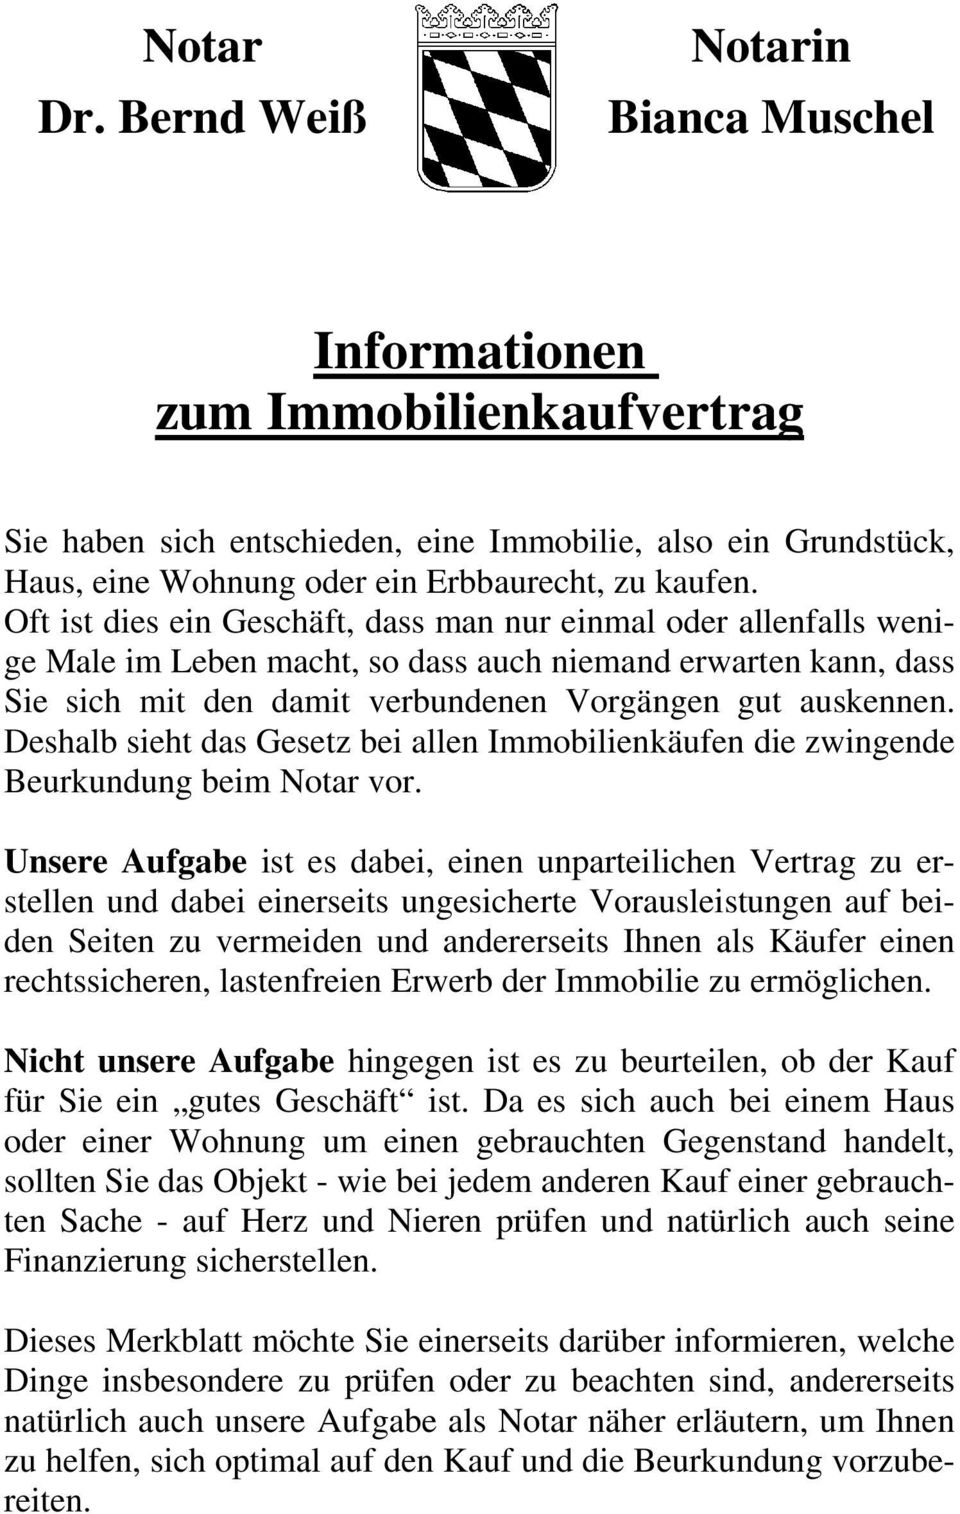 Informationen Zum Immobilienkaufvertrag Pdf